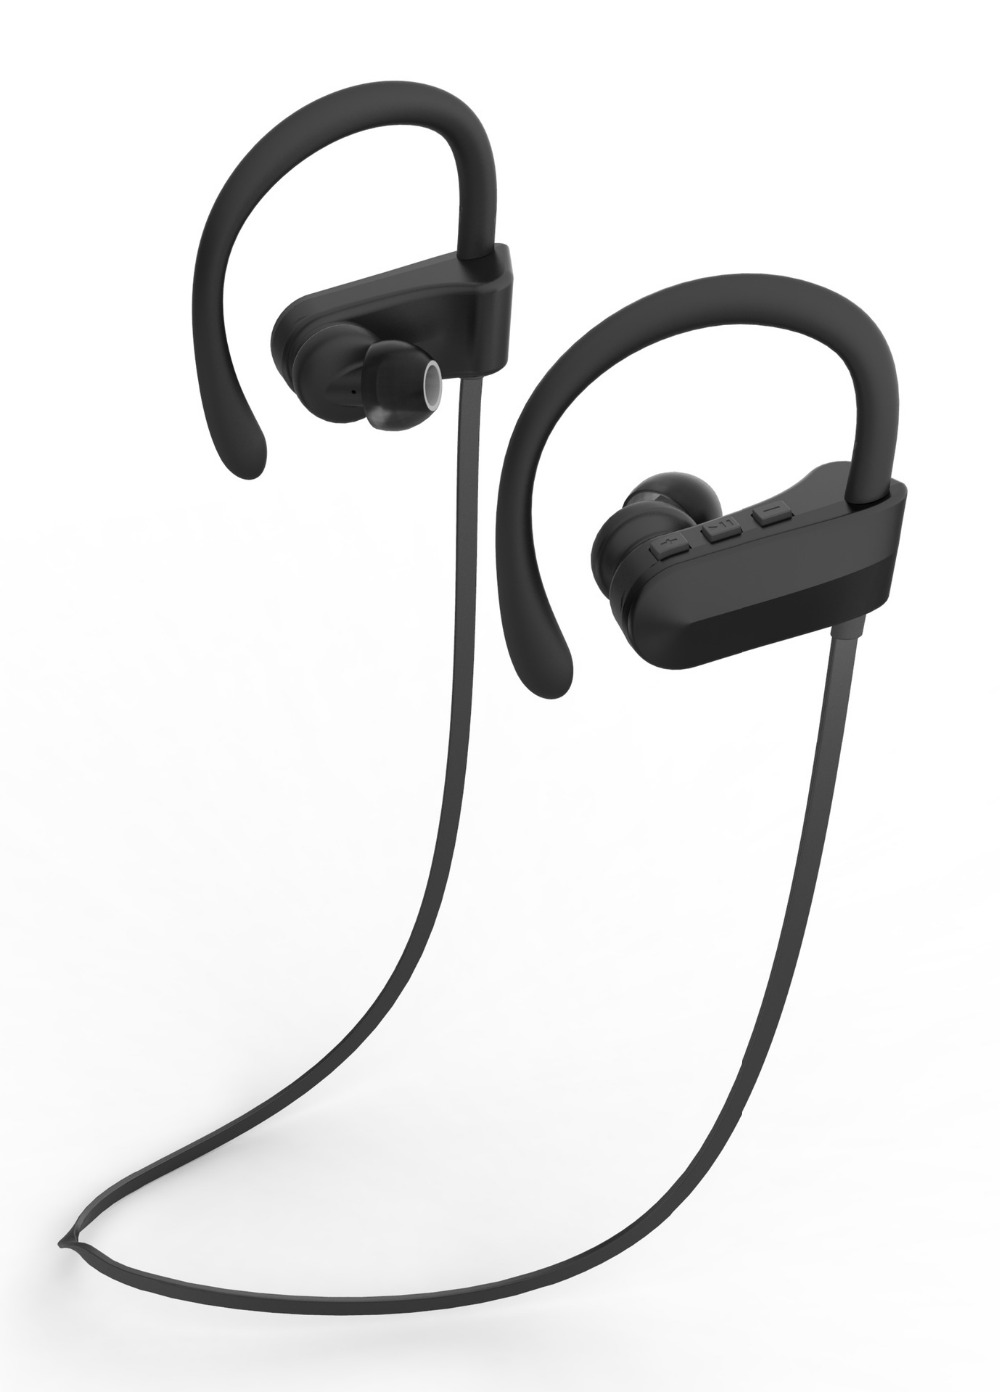 CHEORHOIG Q12 Earphone wireless Bluetooth sports headset Noise Canceling In Ear Earbuds With Mic For Phone/PC/Tablet wireless bluetooth earphone car charger original business dual usb dock headset with mic noise canceling phone charger 2 in 1